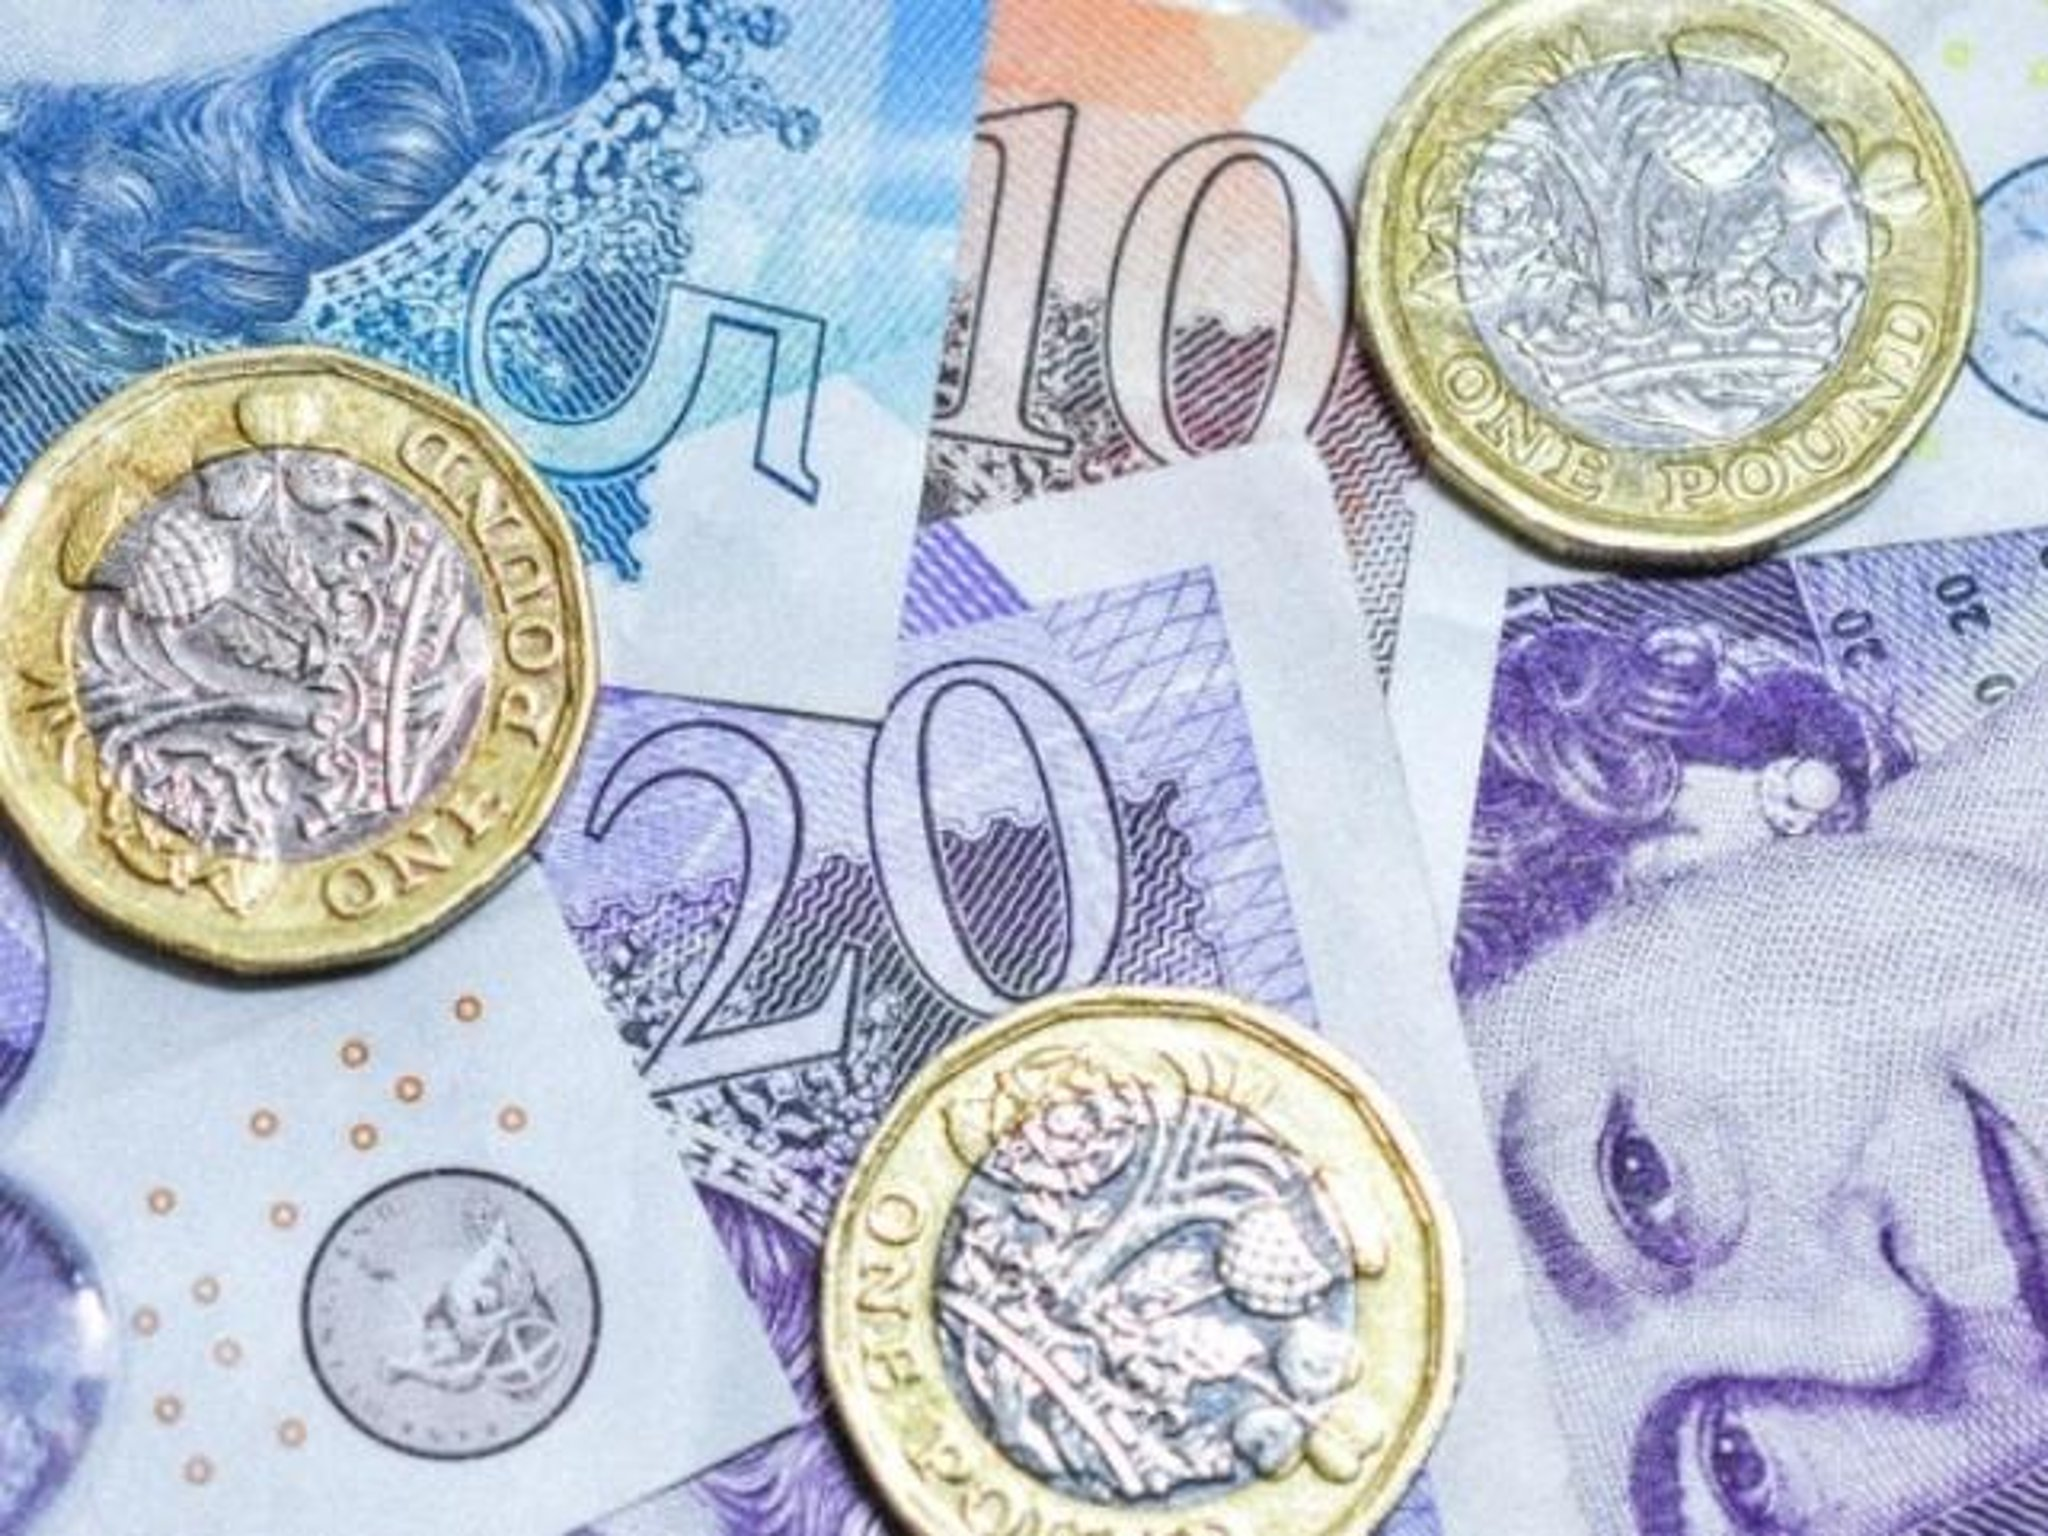 Wigan residents could be eligible for a £500 one-off tax credit payment